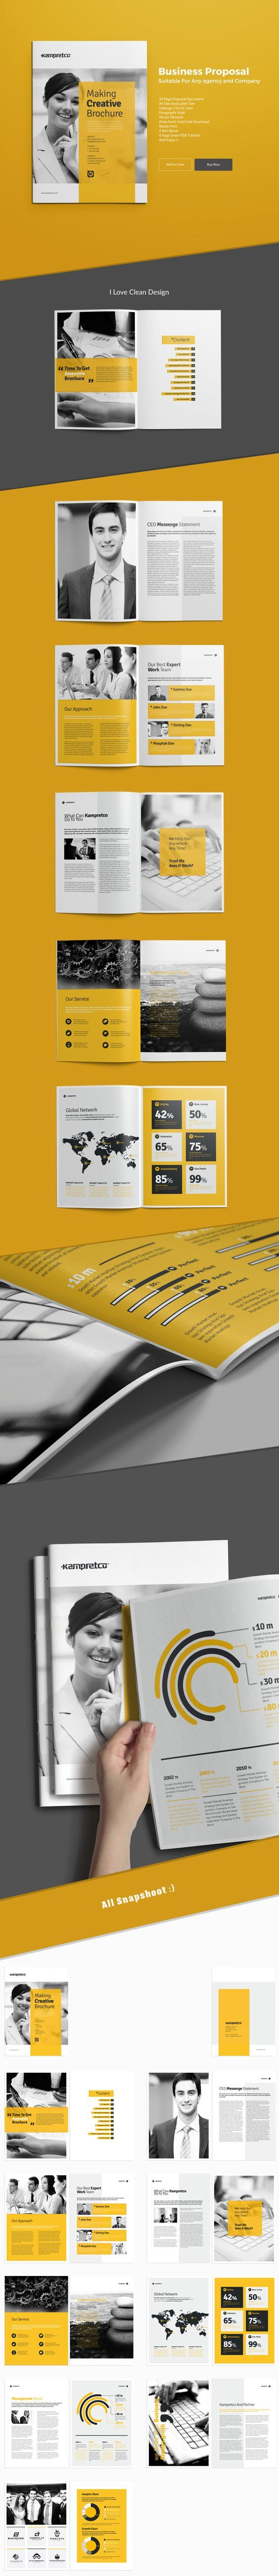 Business Brochure Tempalte suitable for any company22 pages, a4, brochure, business, clean, corporate, corporate brochure, customisable, customize, design, format, free fonts, gray, green, indesign, letter, logo, modern, PDF file, porftolio, print, pr…: